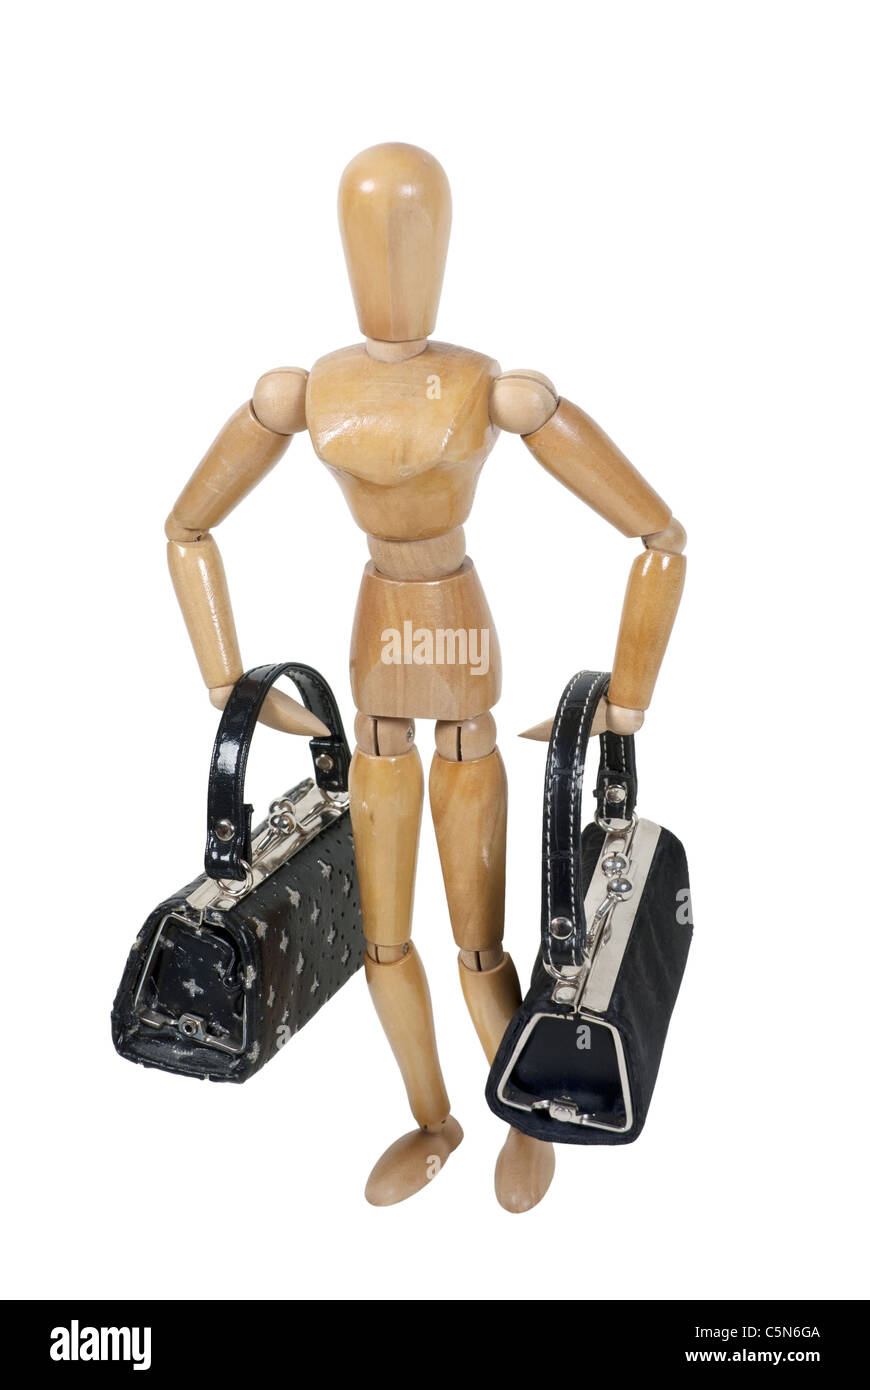 Wooden model carrying black bags of luggage for traveling - path included - Stock Image